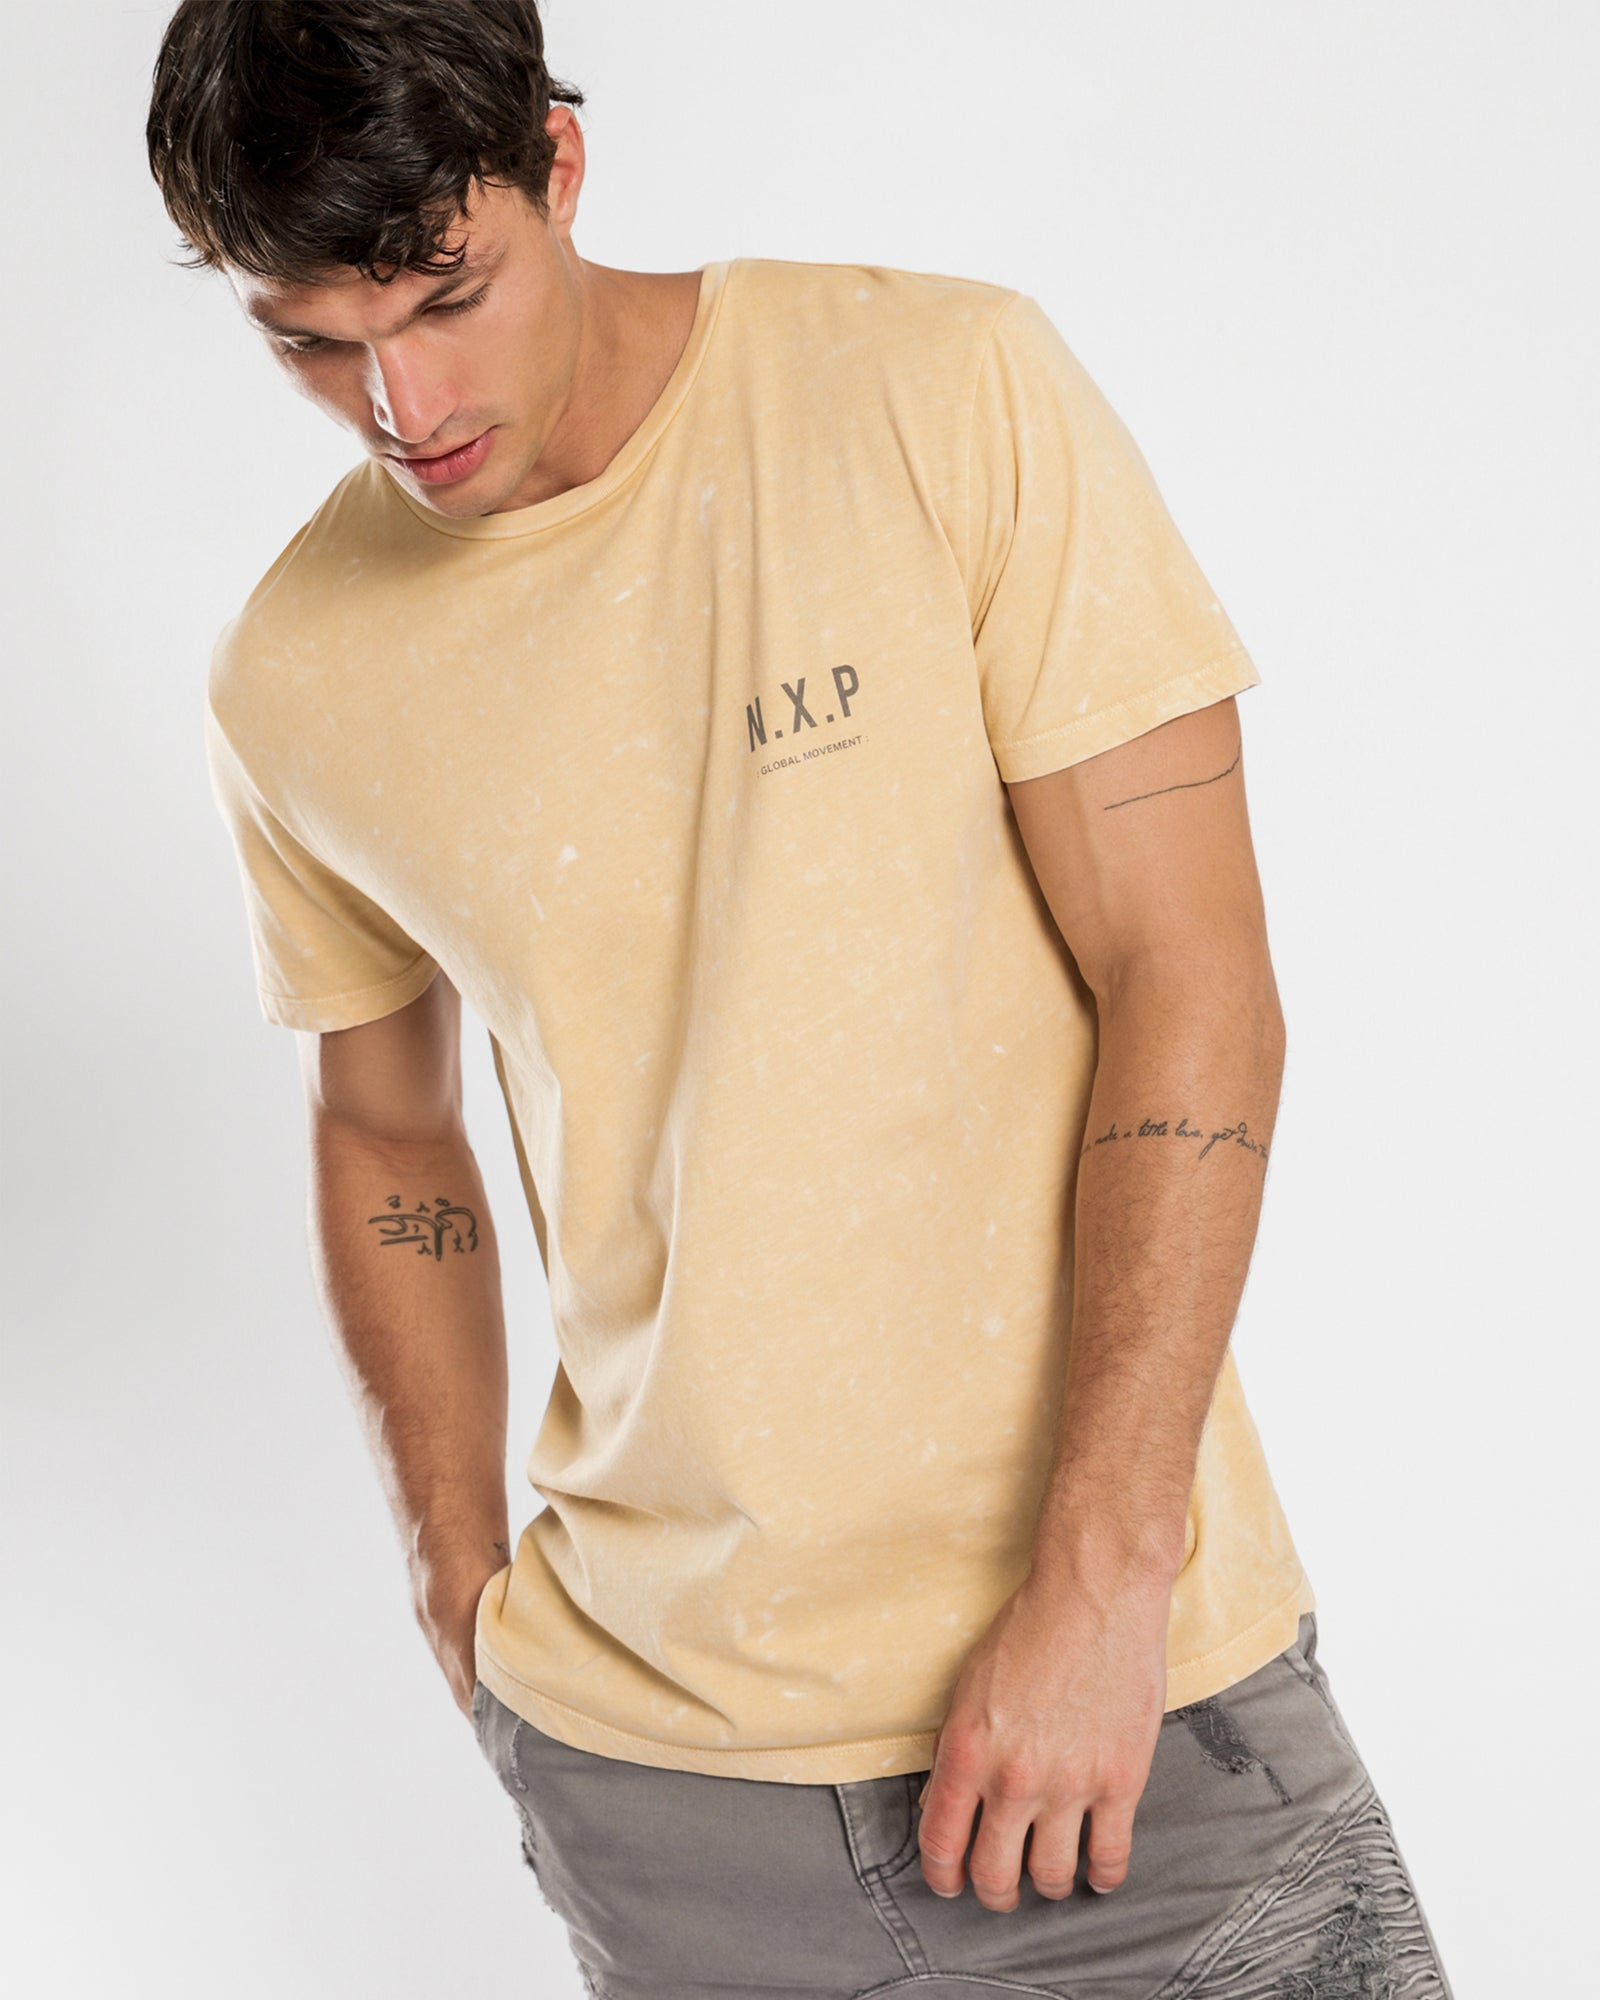 Nena & Pasadena Submerge Scoop Back Tee - Acid Tan